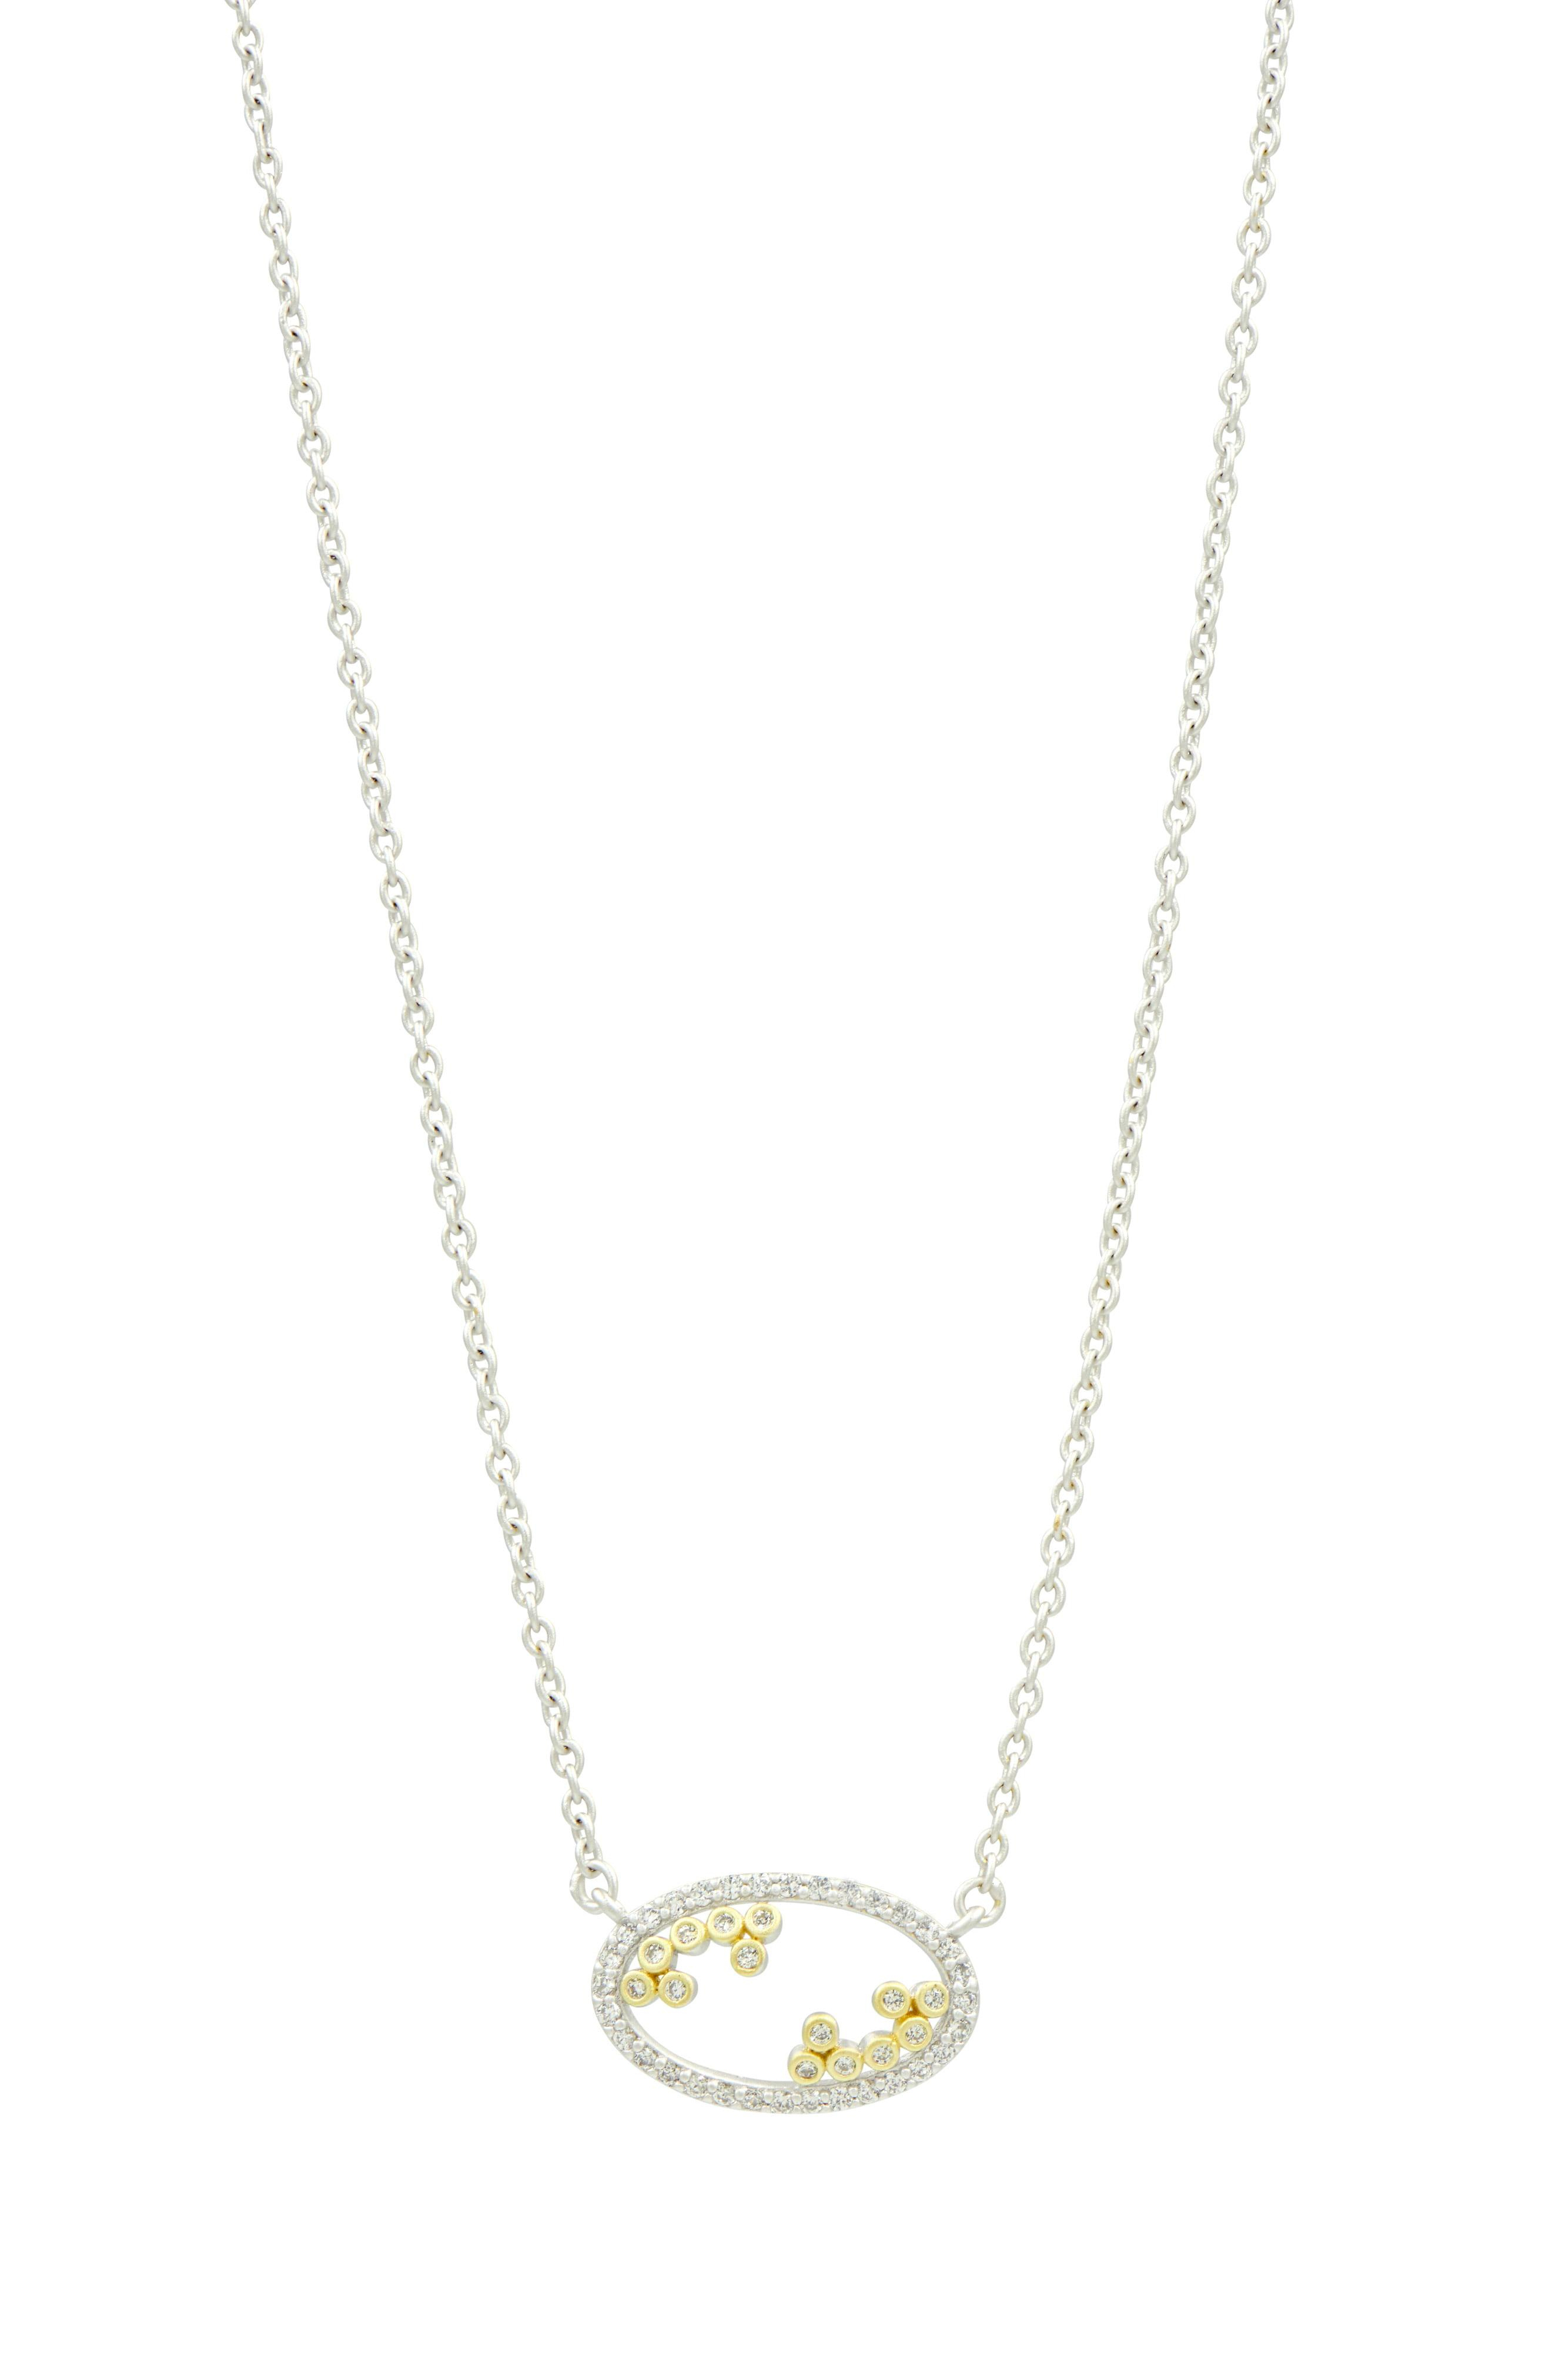 Lyst – Freida Rothman Fleur Bloom Open Pendant Necklace In Metallic Throughout 2019 Glorious Bloom Pendant Necklaces (View 13 of 25)